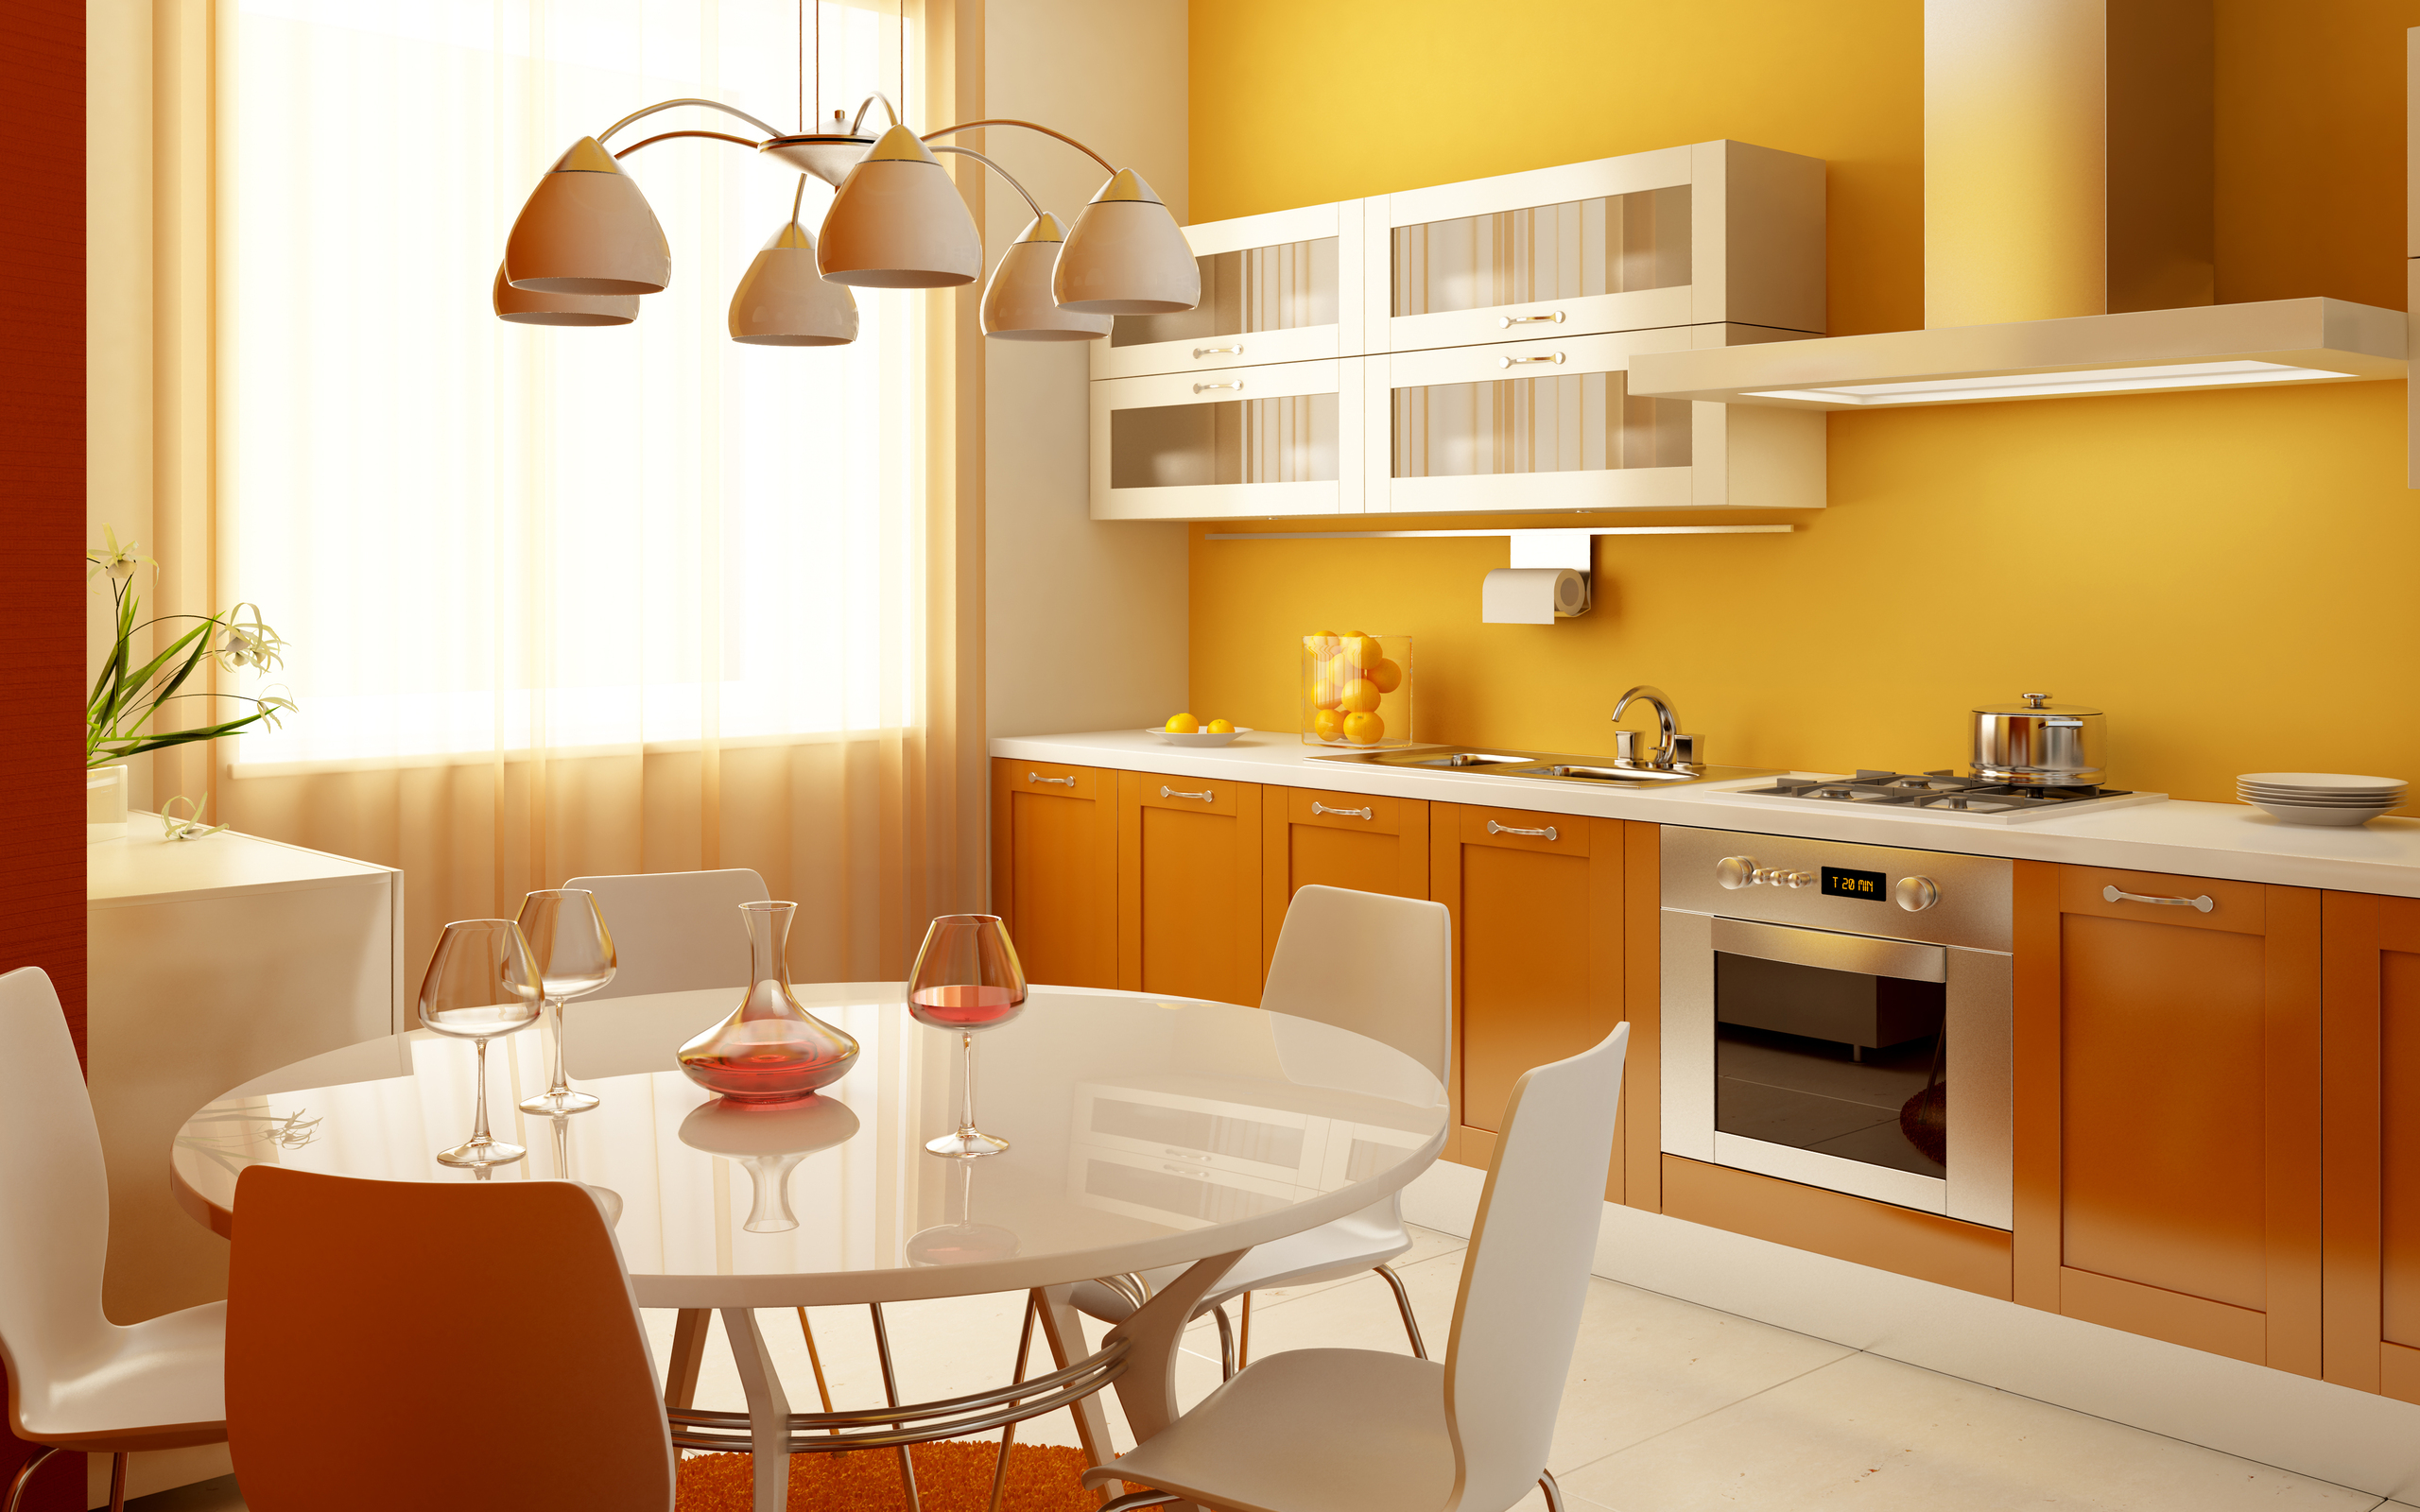 3d color kitchen wallpapers 2560x1600 2123255 for 3d wallpaper for kitchen walls